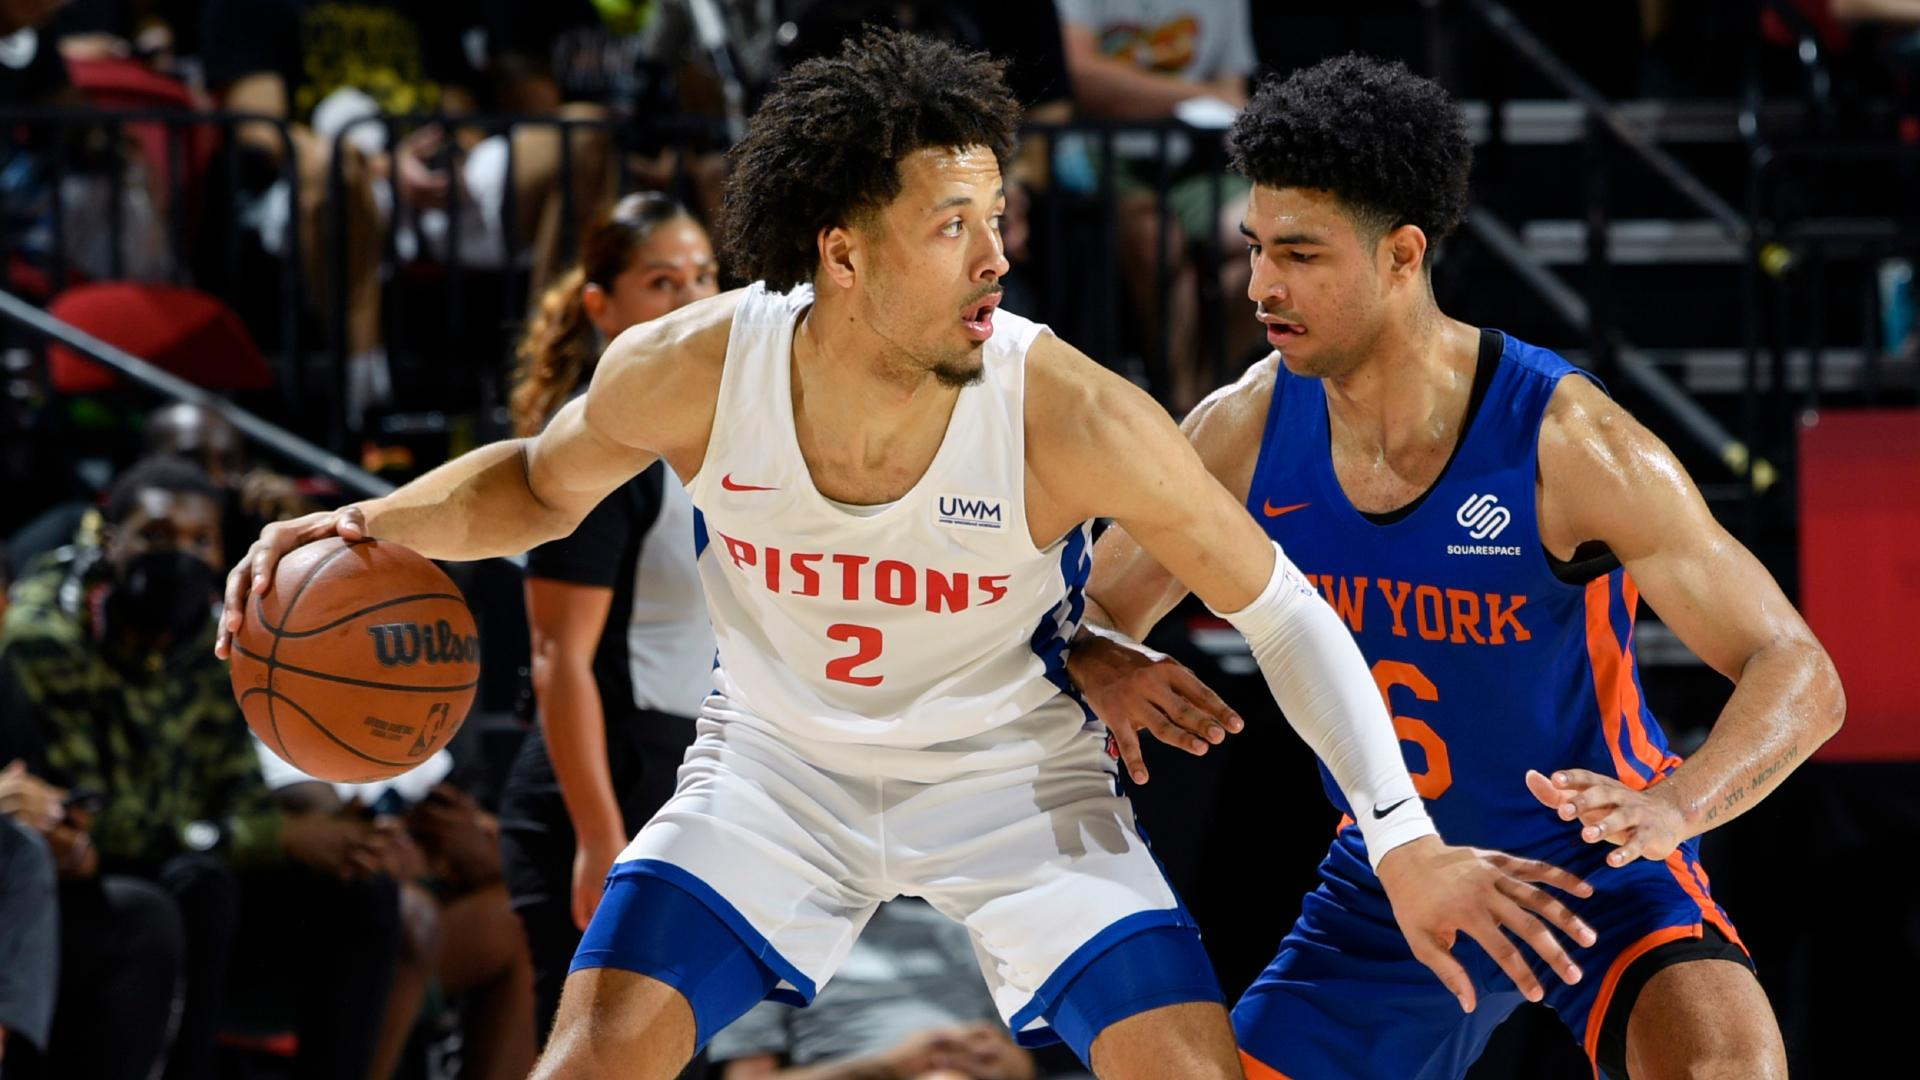 Cade Cunningham scores 24 points in win over Knicks